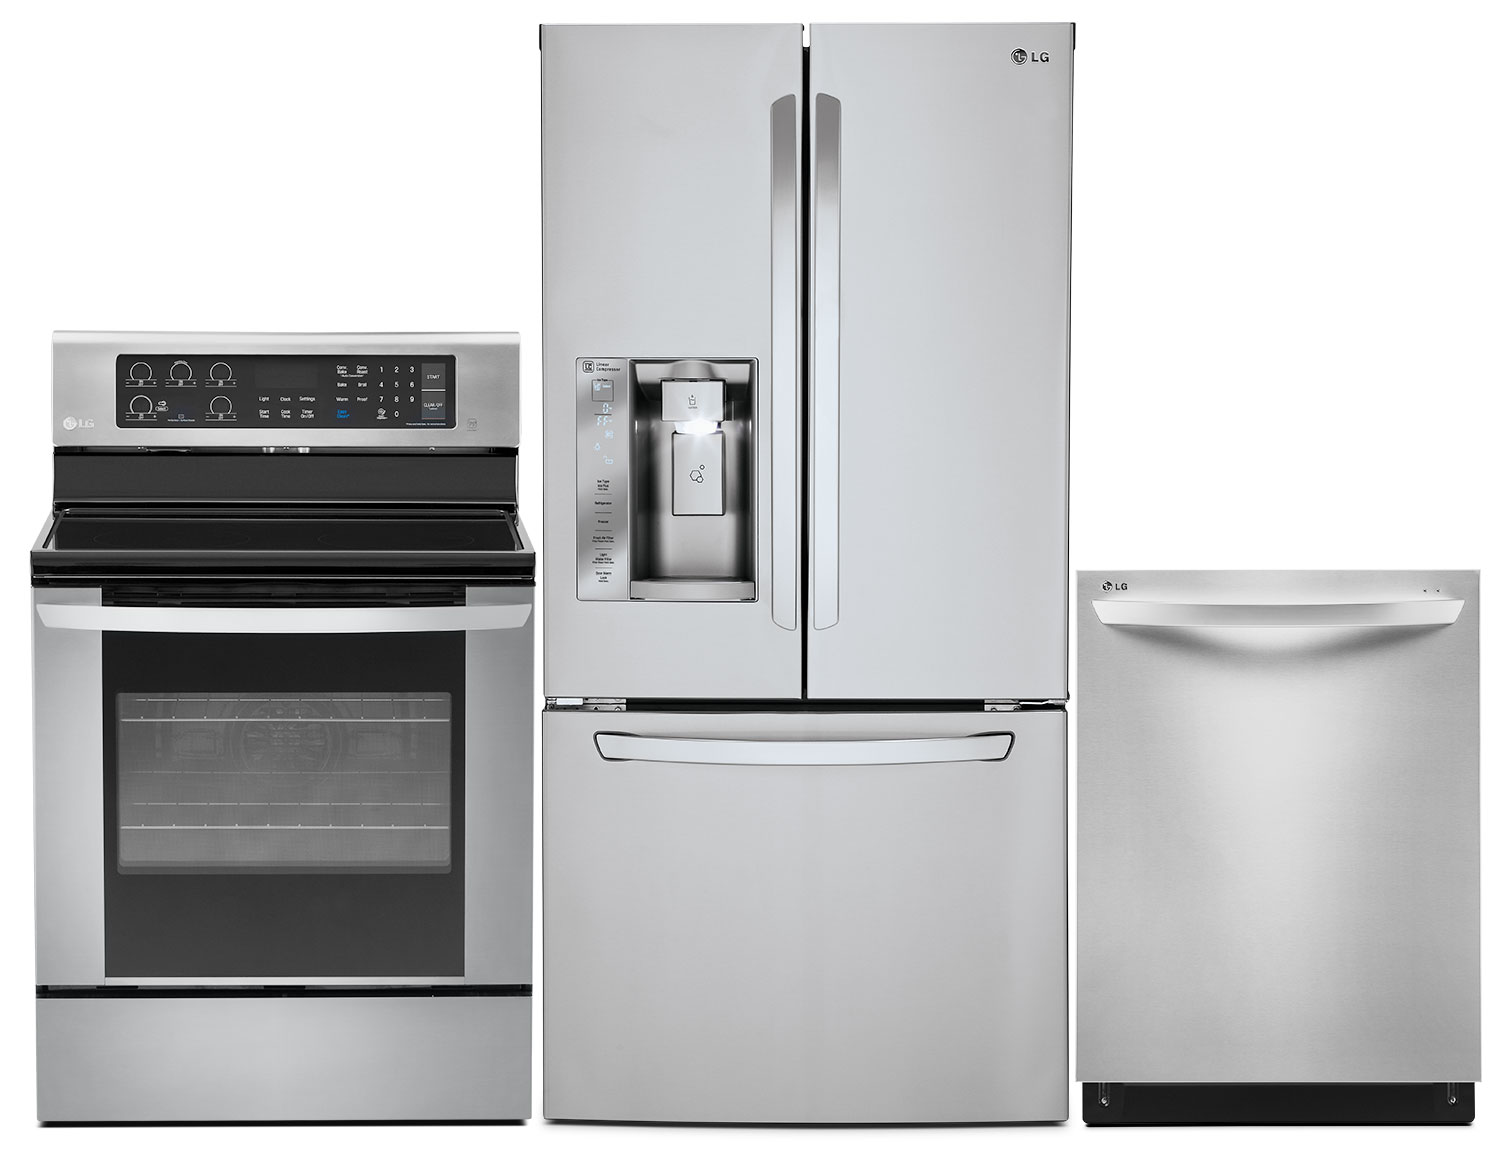 LG 24.2 Cu. Ft. French-Door Refrigerator, 6.3 Cu. Ft. Range and Dishwasher